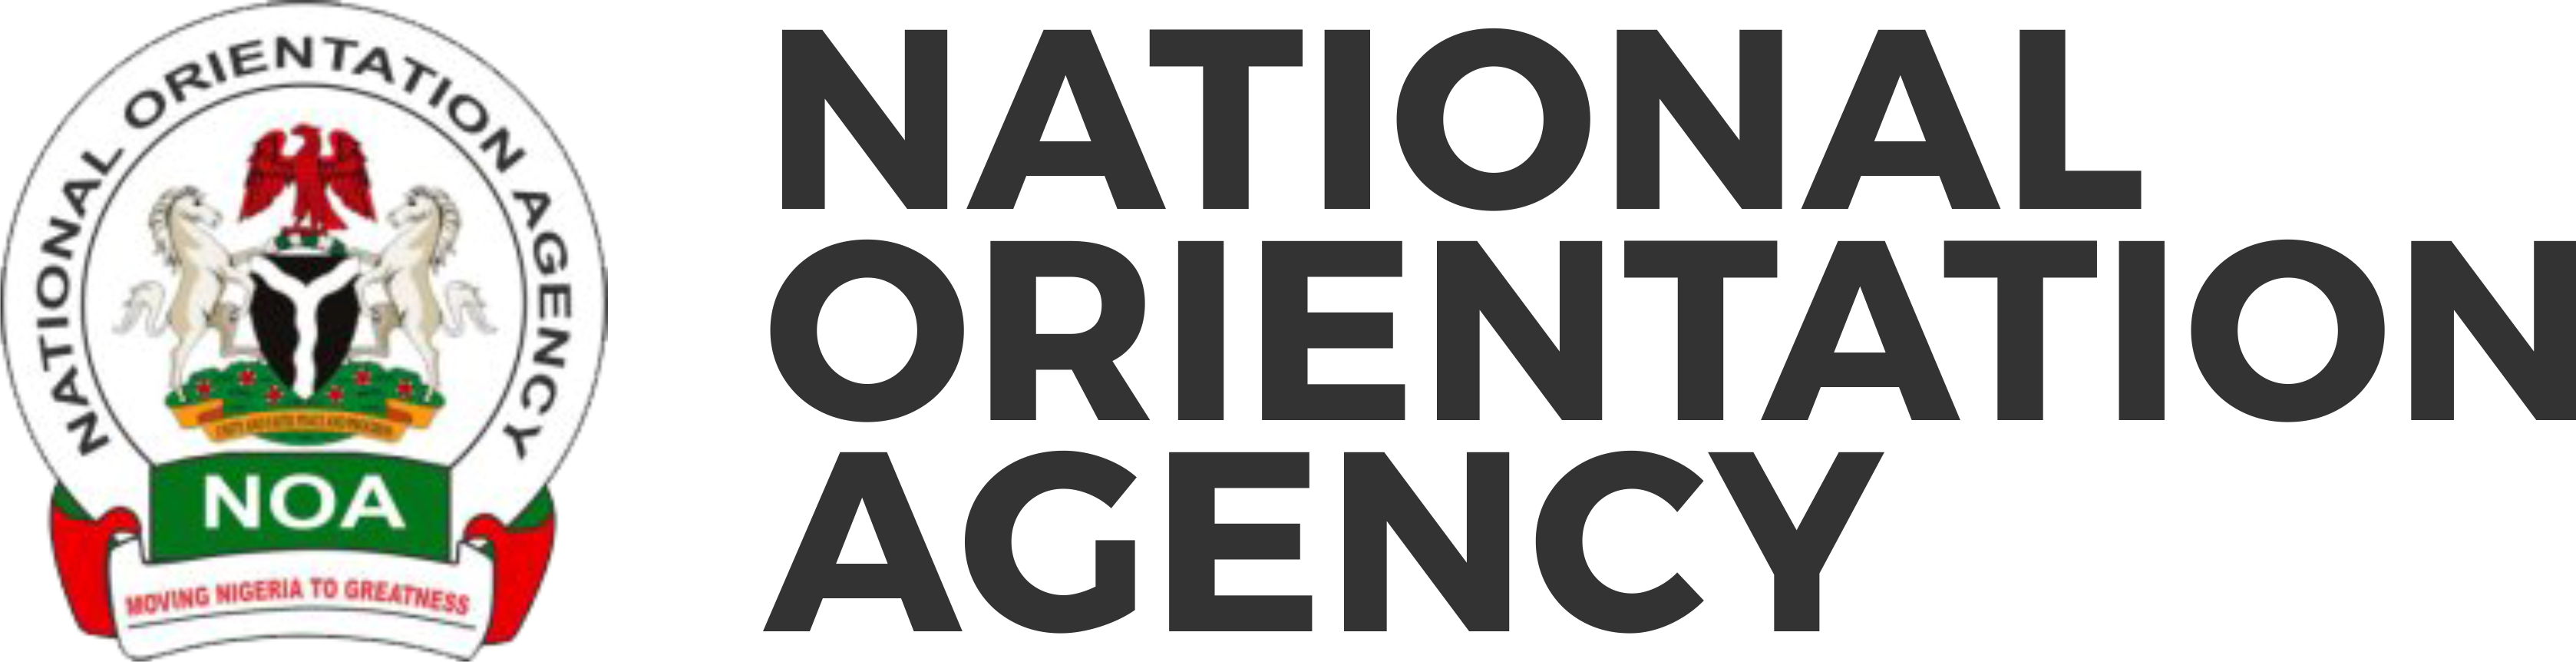 National Orientation Agency